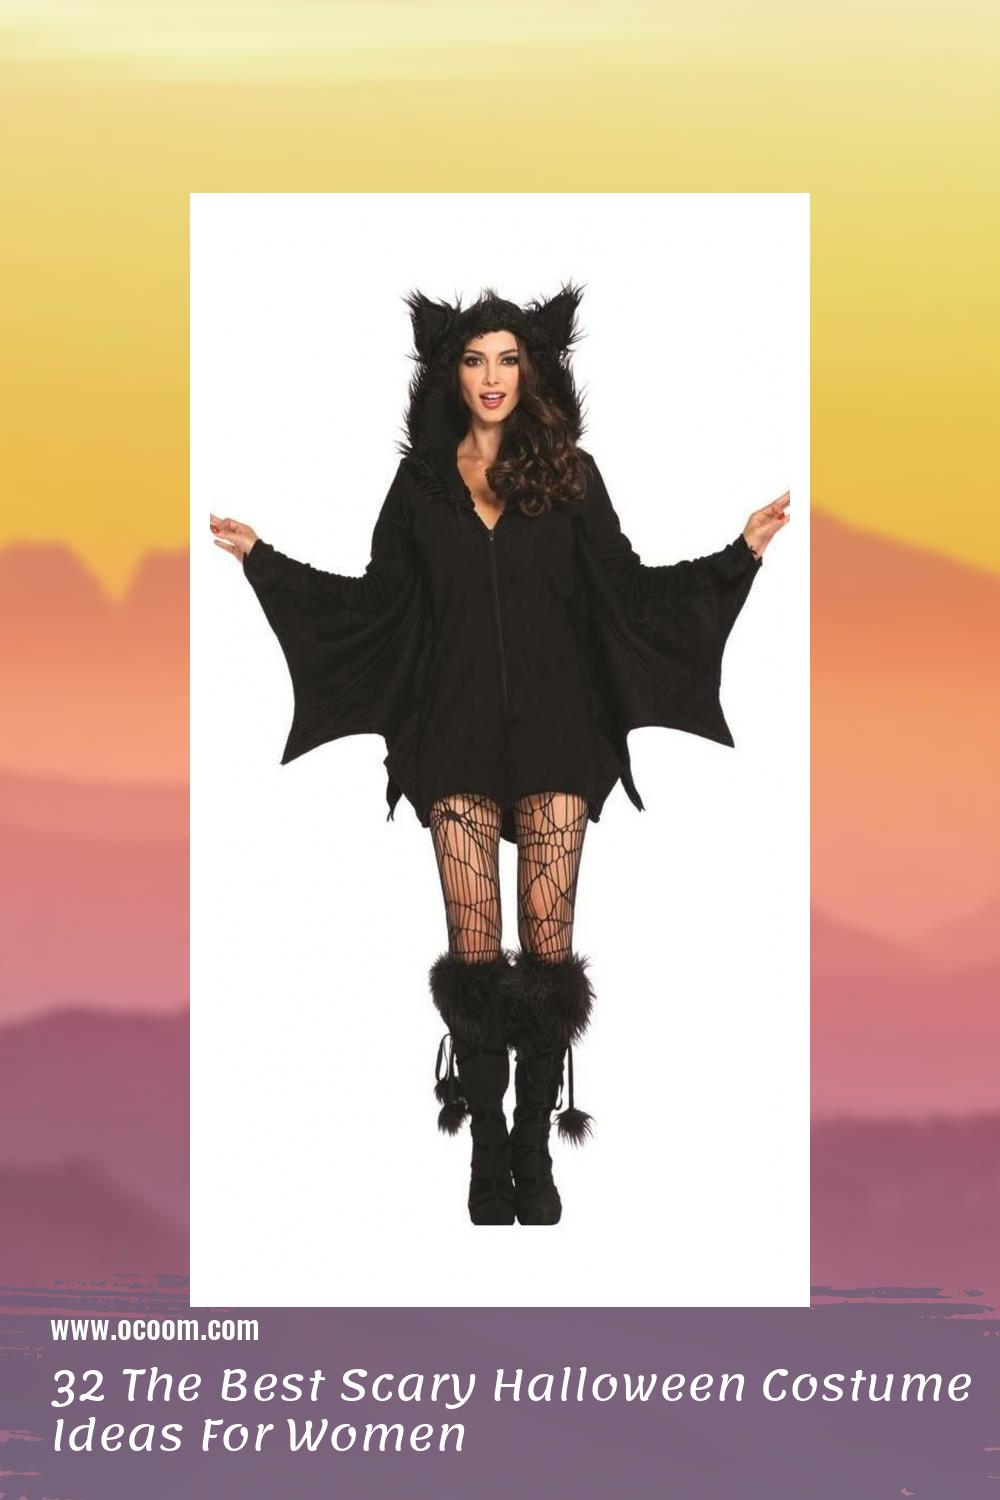 32 The Best Scary Halloween Costume Ideas For Women 34